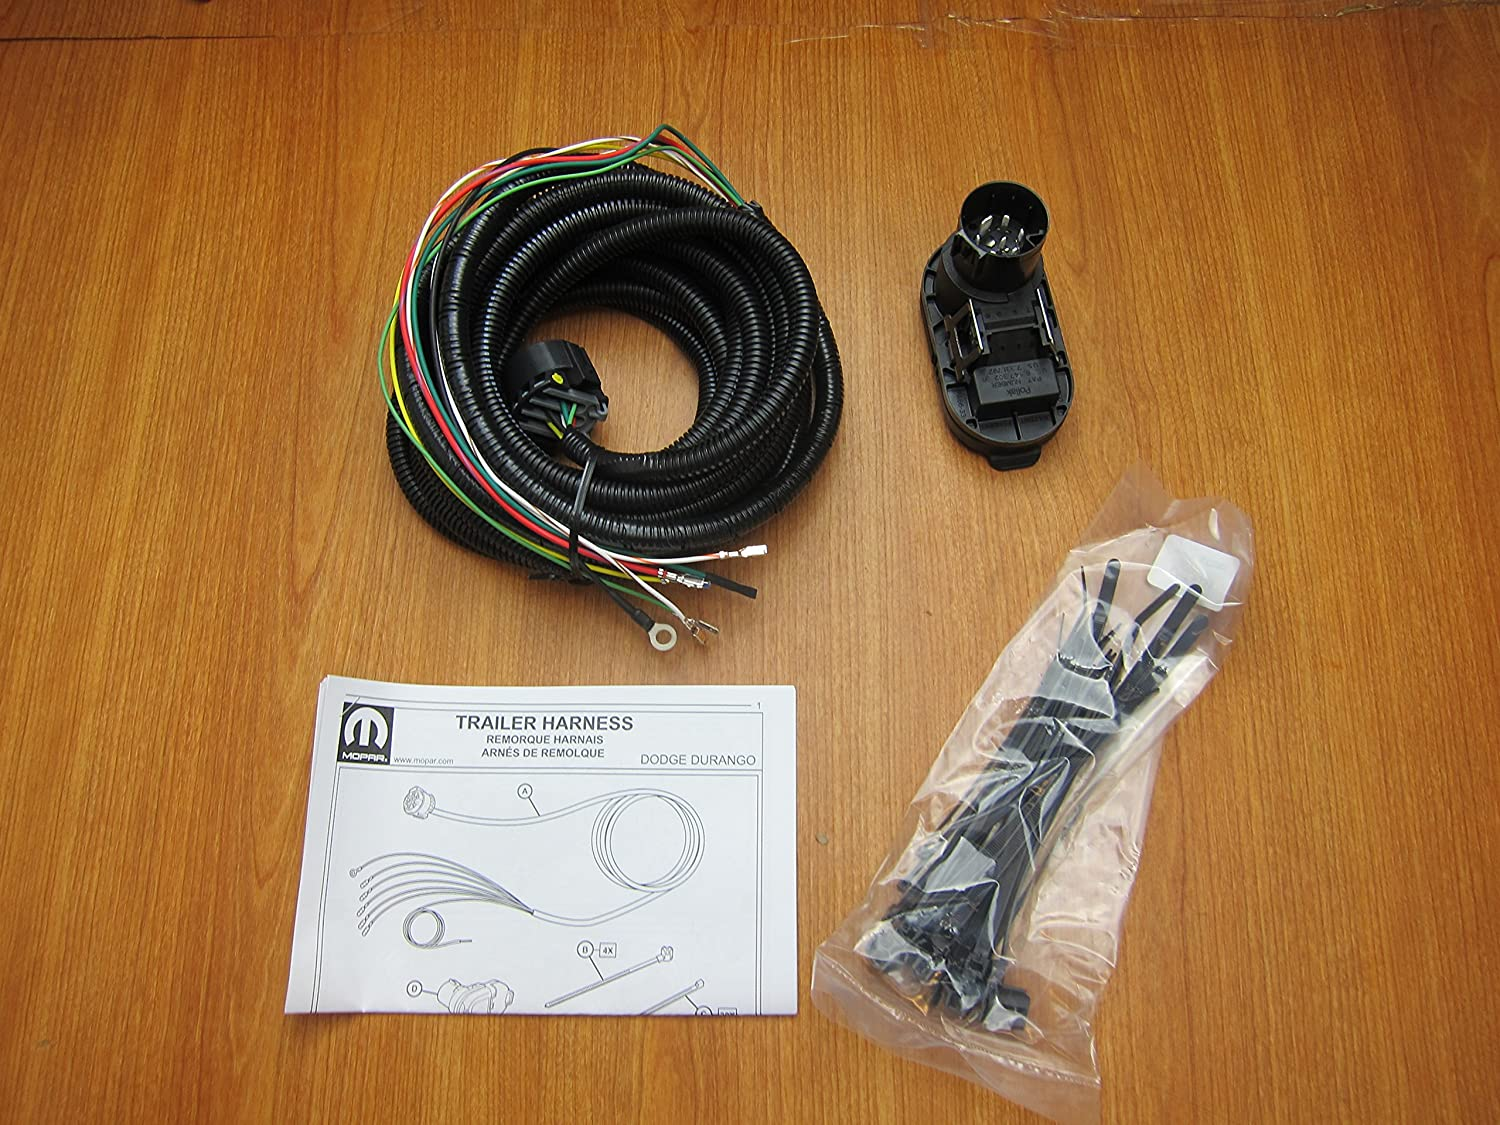 Fantastic Amazon Com Dodge Durango Trailer Tow Hitch Wiring Harness Kit Mopar Wiring Digital Resources Funapmognl